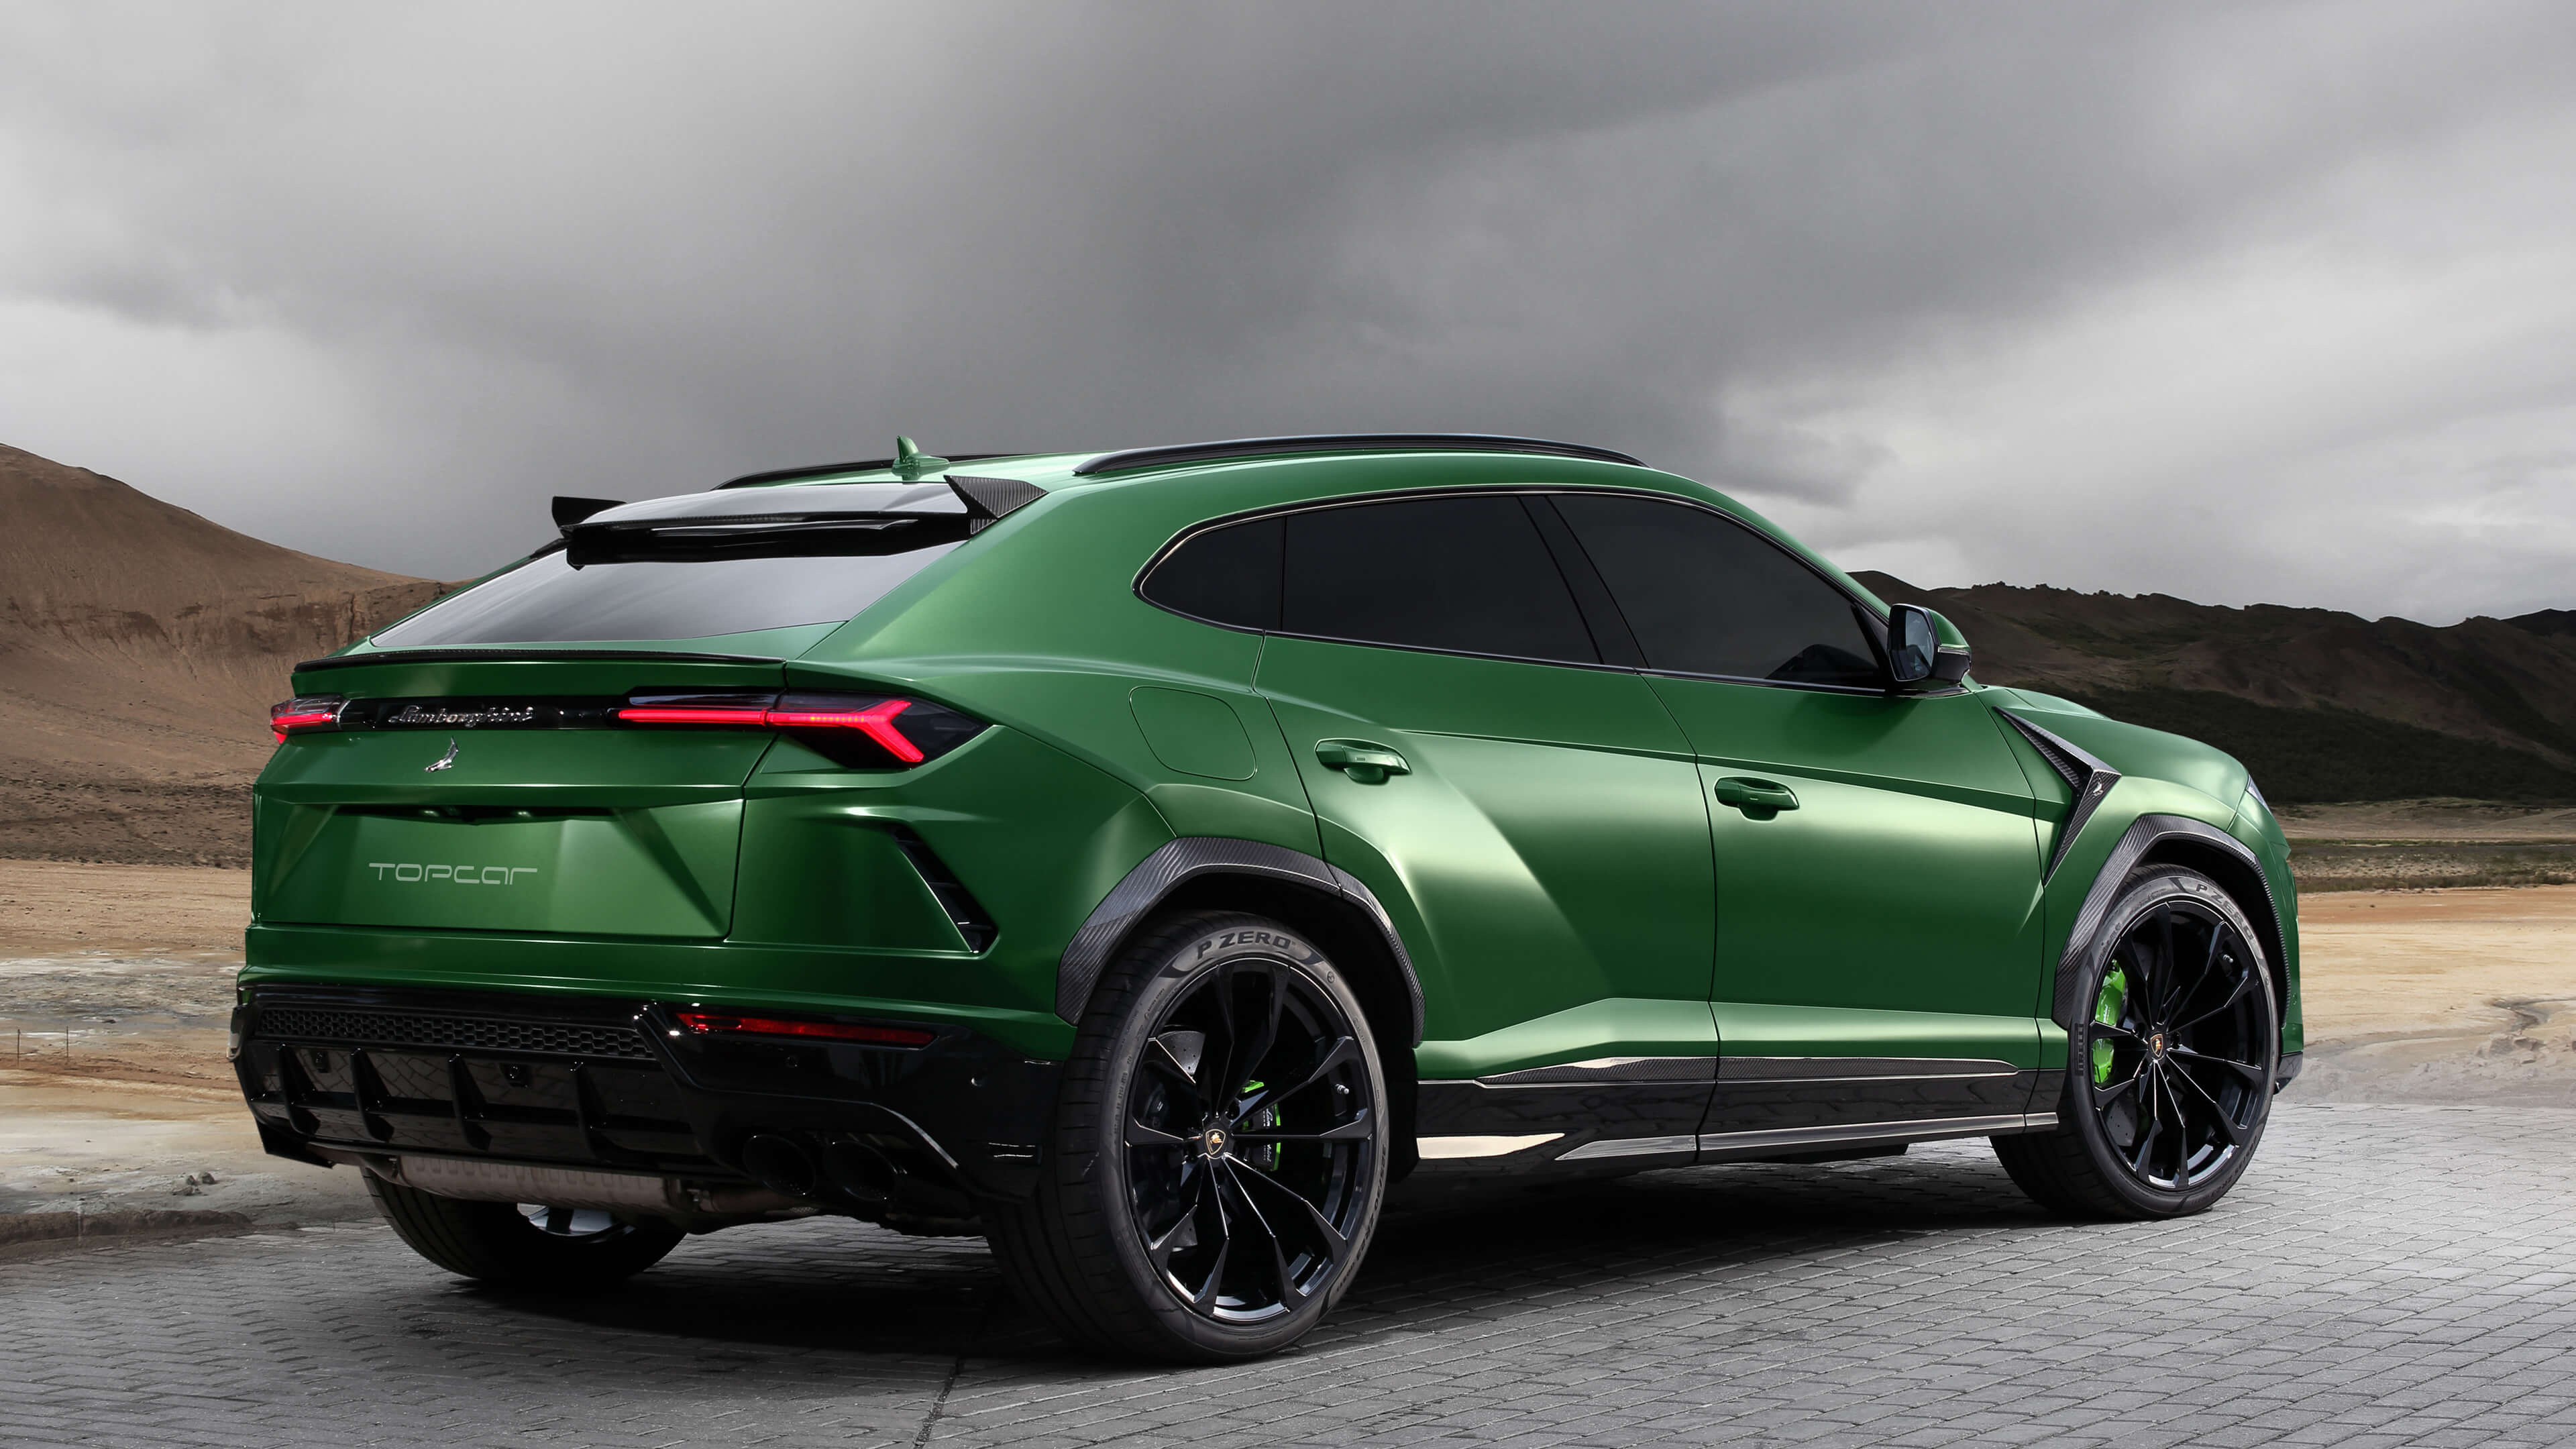 Lamborghini Urus Wide Hd Wallpaper 66535 3840x2160px